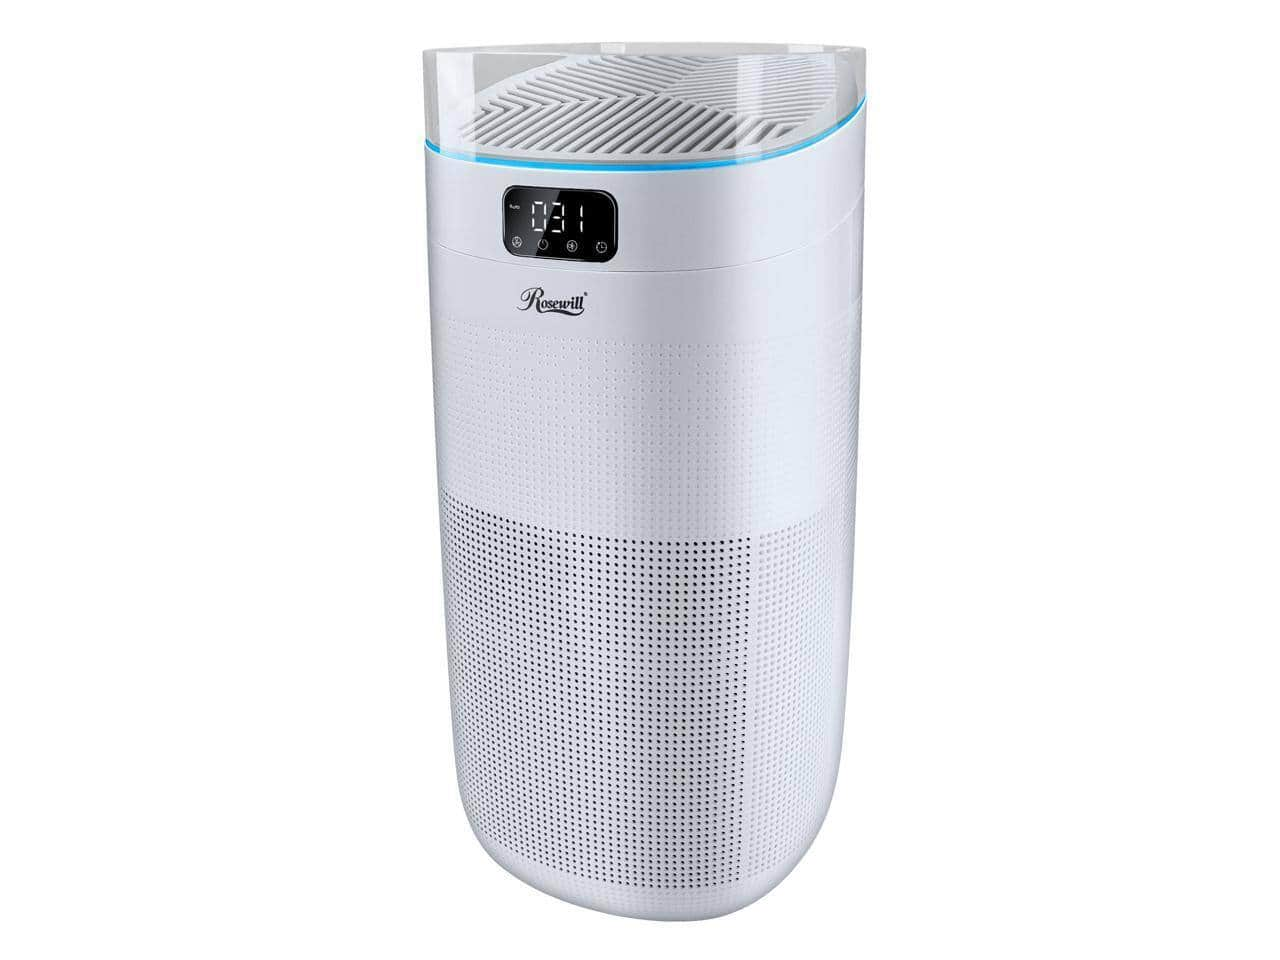 Rosewill True HEPA Large Room Air Purifier (with or w/o child lock) $80 + Free Shipping